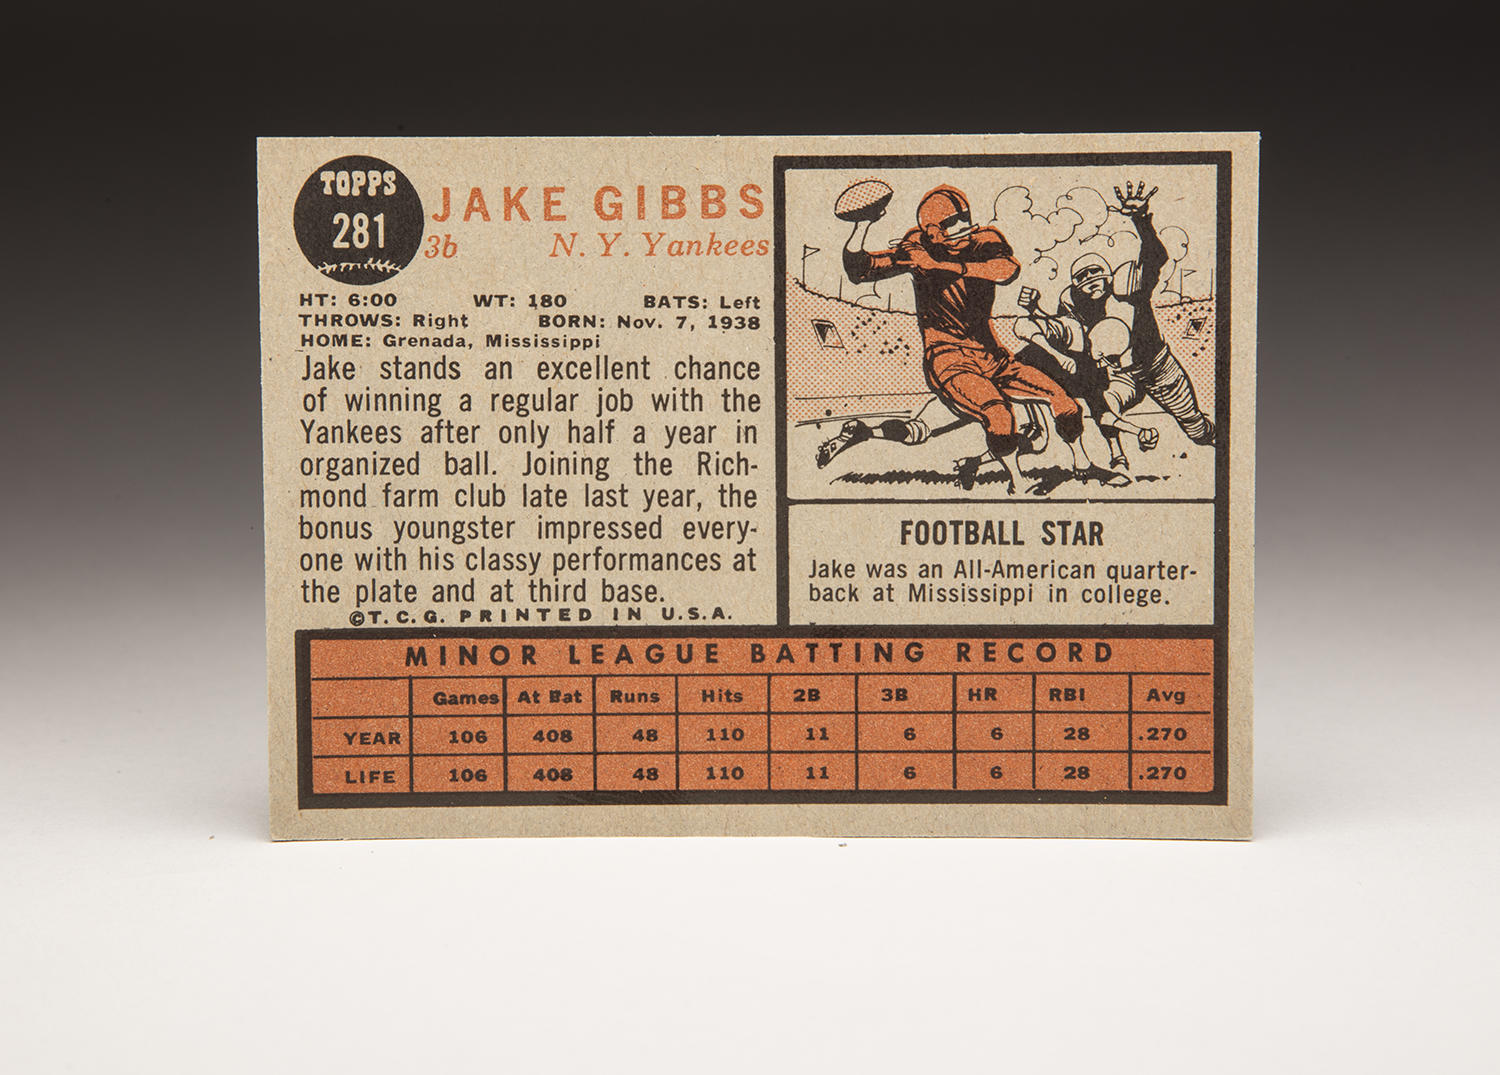 The reverse side of Jake Gibbs' 1962 Topps card. (By Photographer Milo Stewart Jr./National Baseball Hall of Fame and Museum)